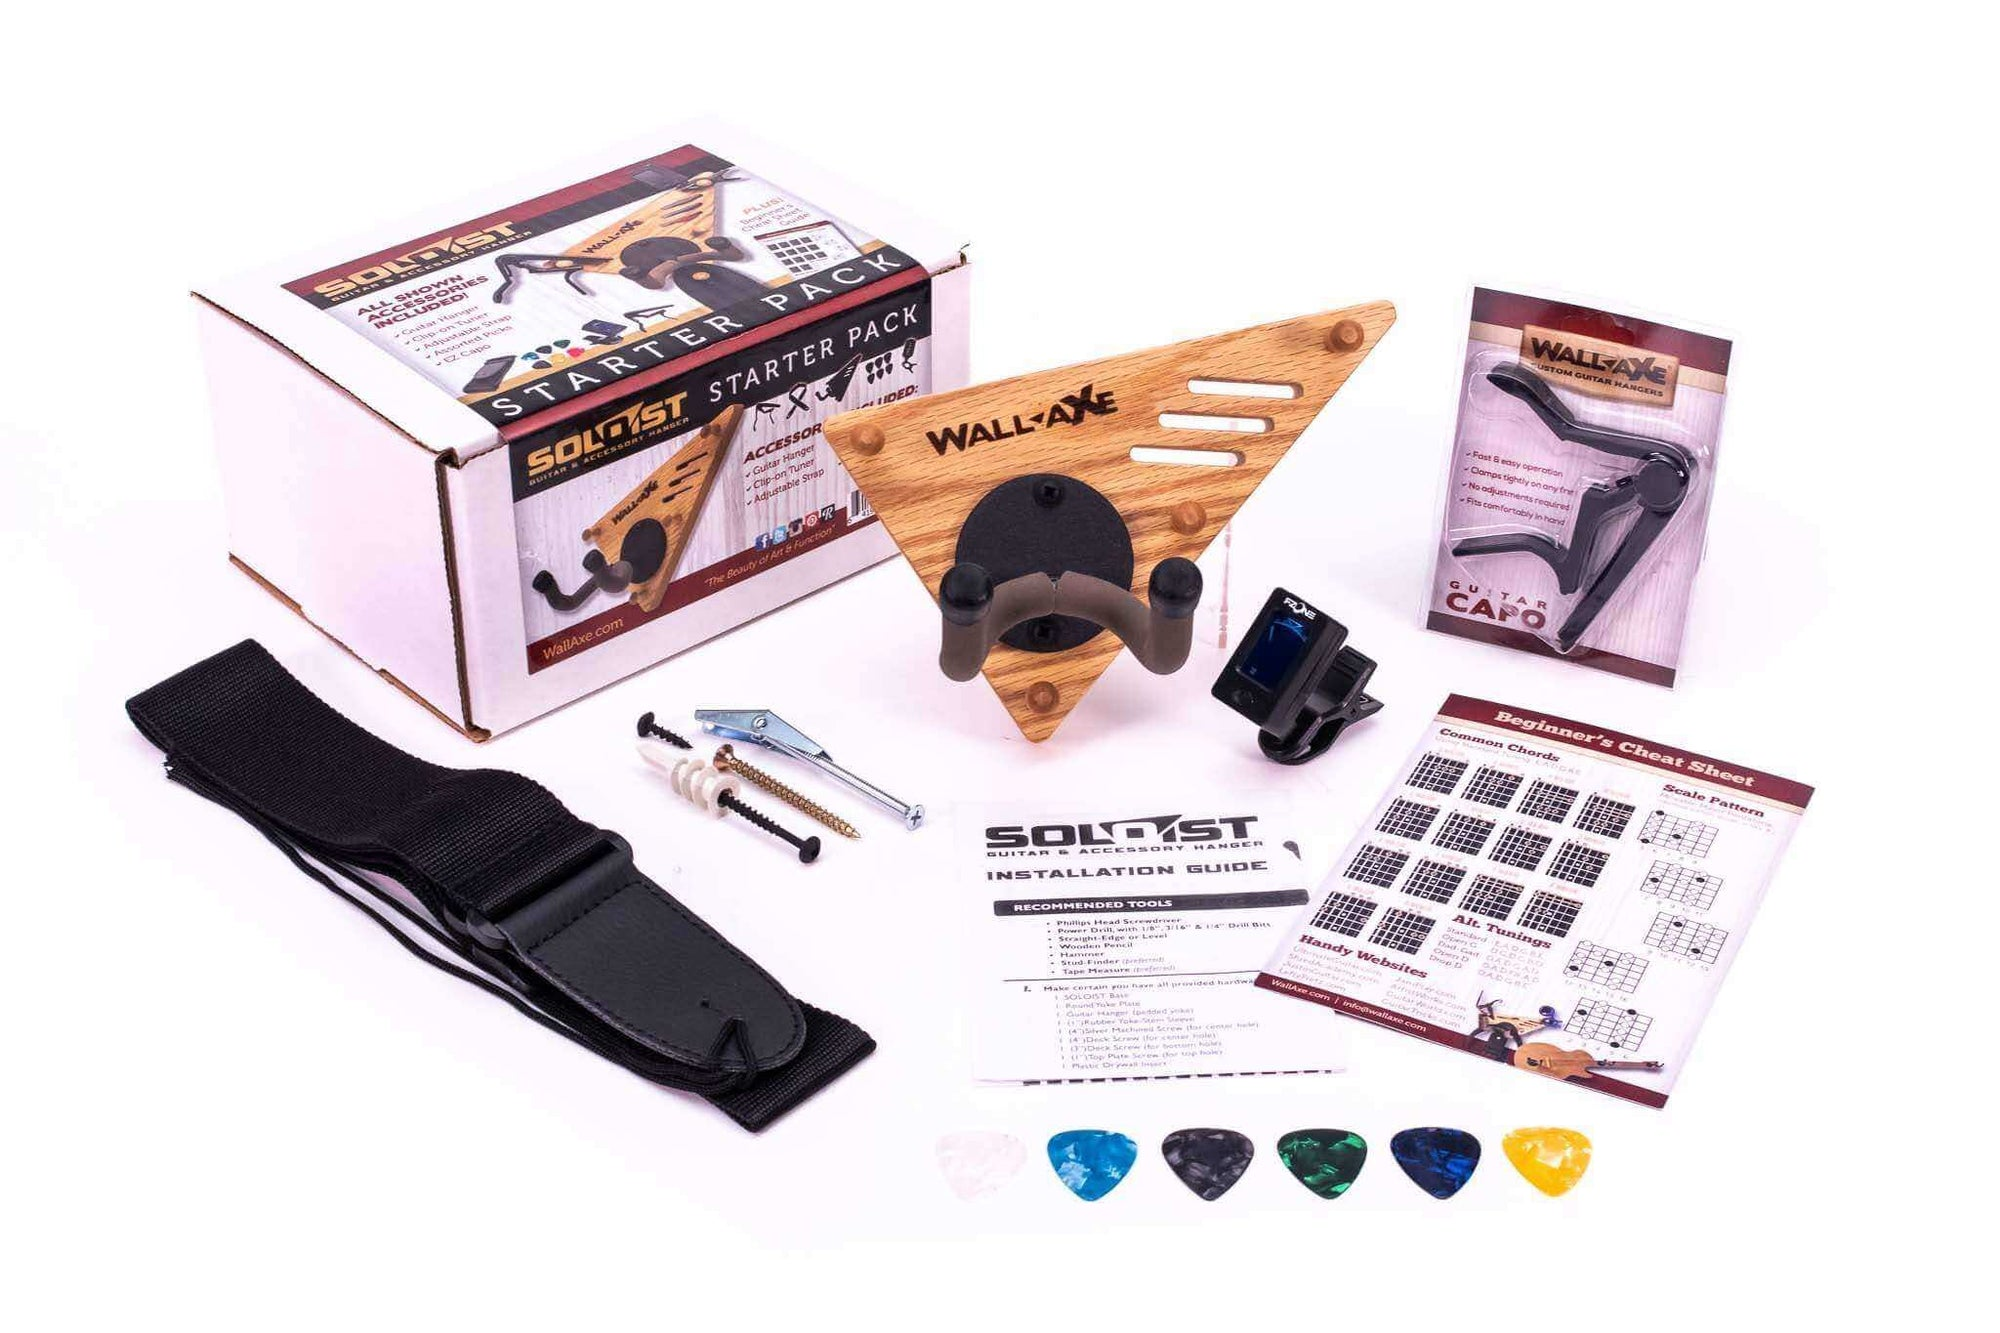 Soloist Guitar Hanger and Accessory Starter Pack-Wall-Axe Guitar Hangers